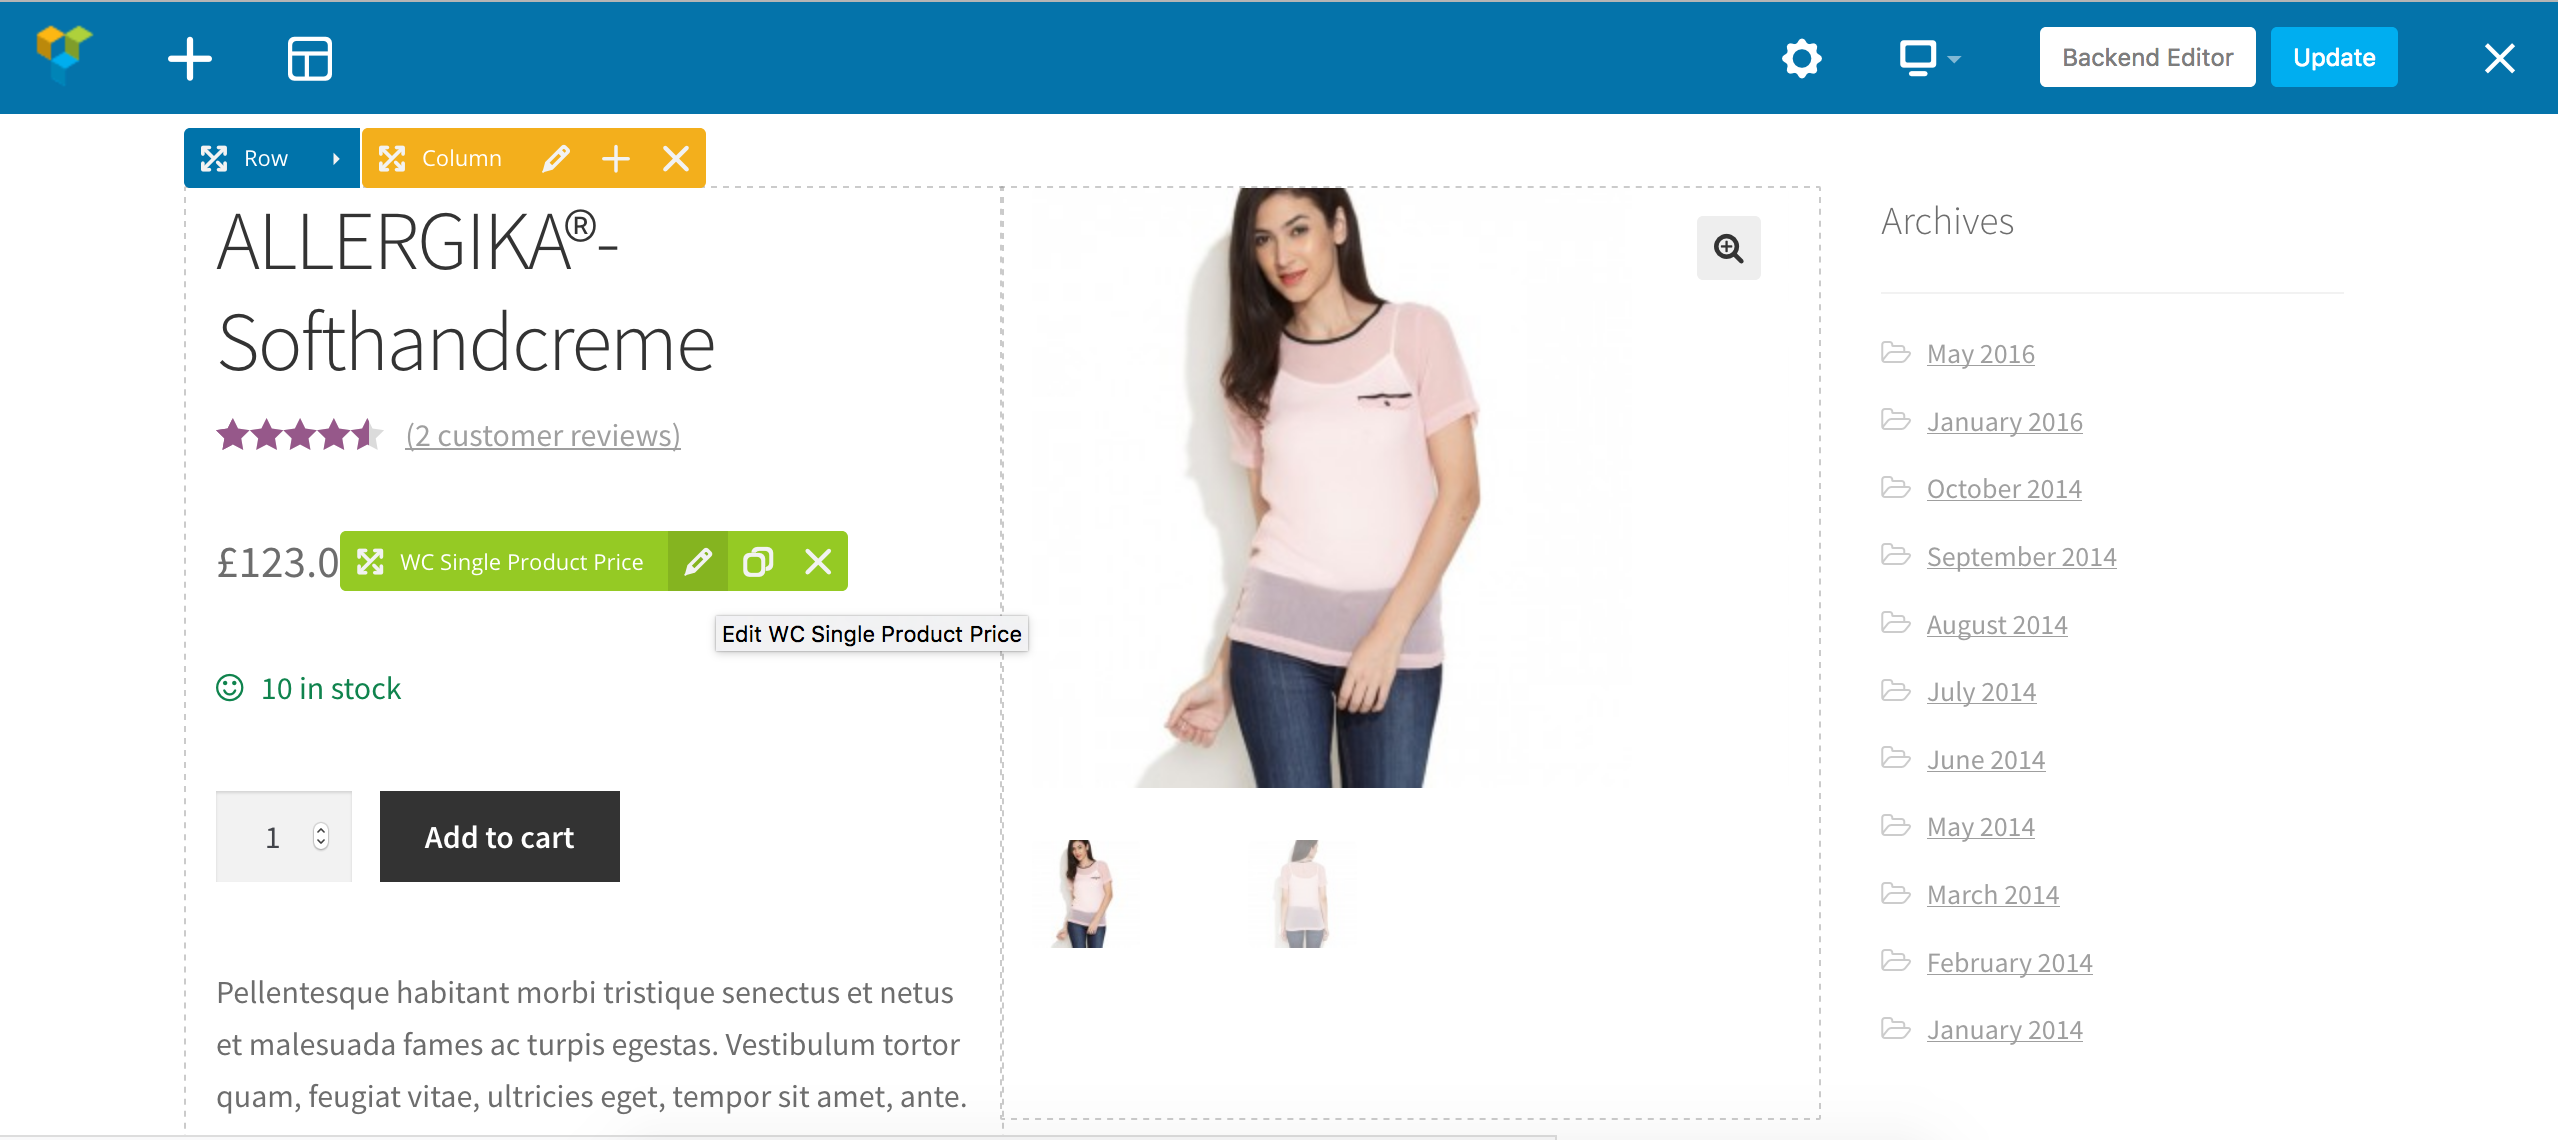 single2 - WooCommerce Single Product Page Builder